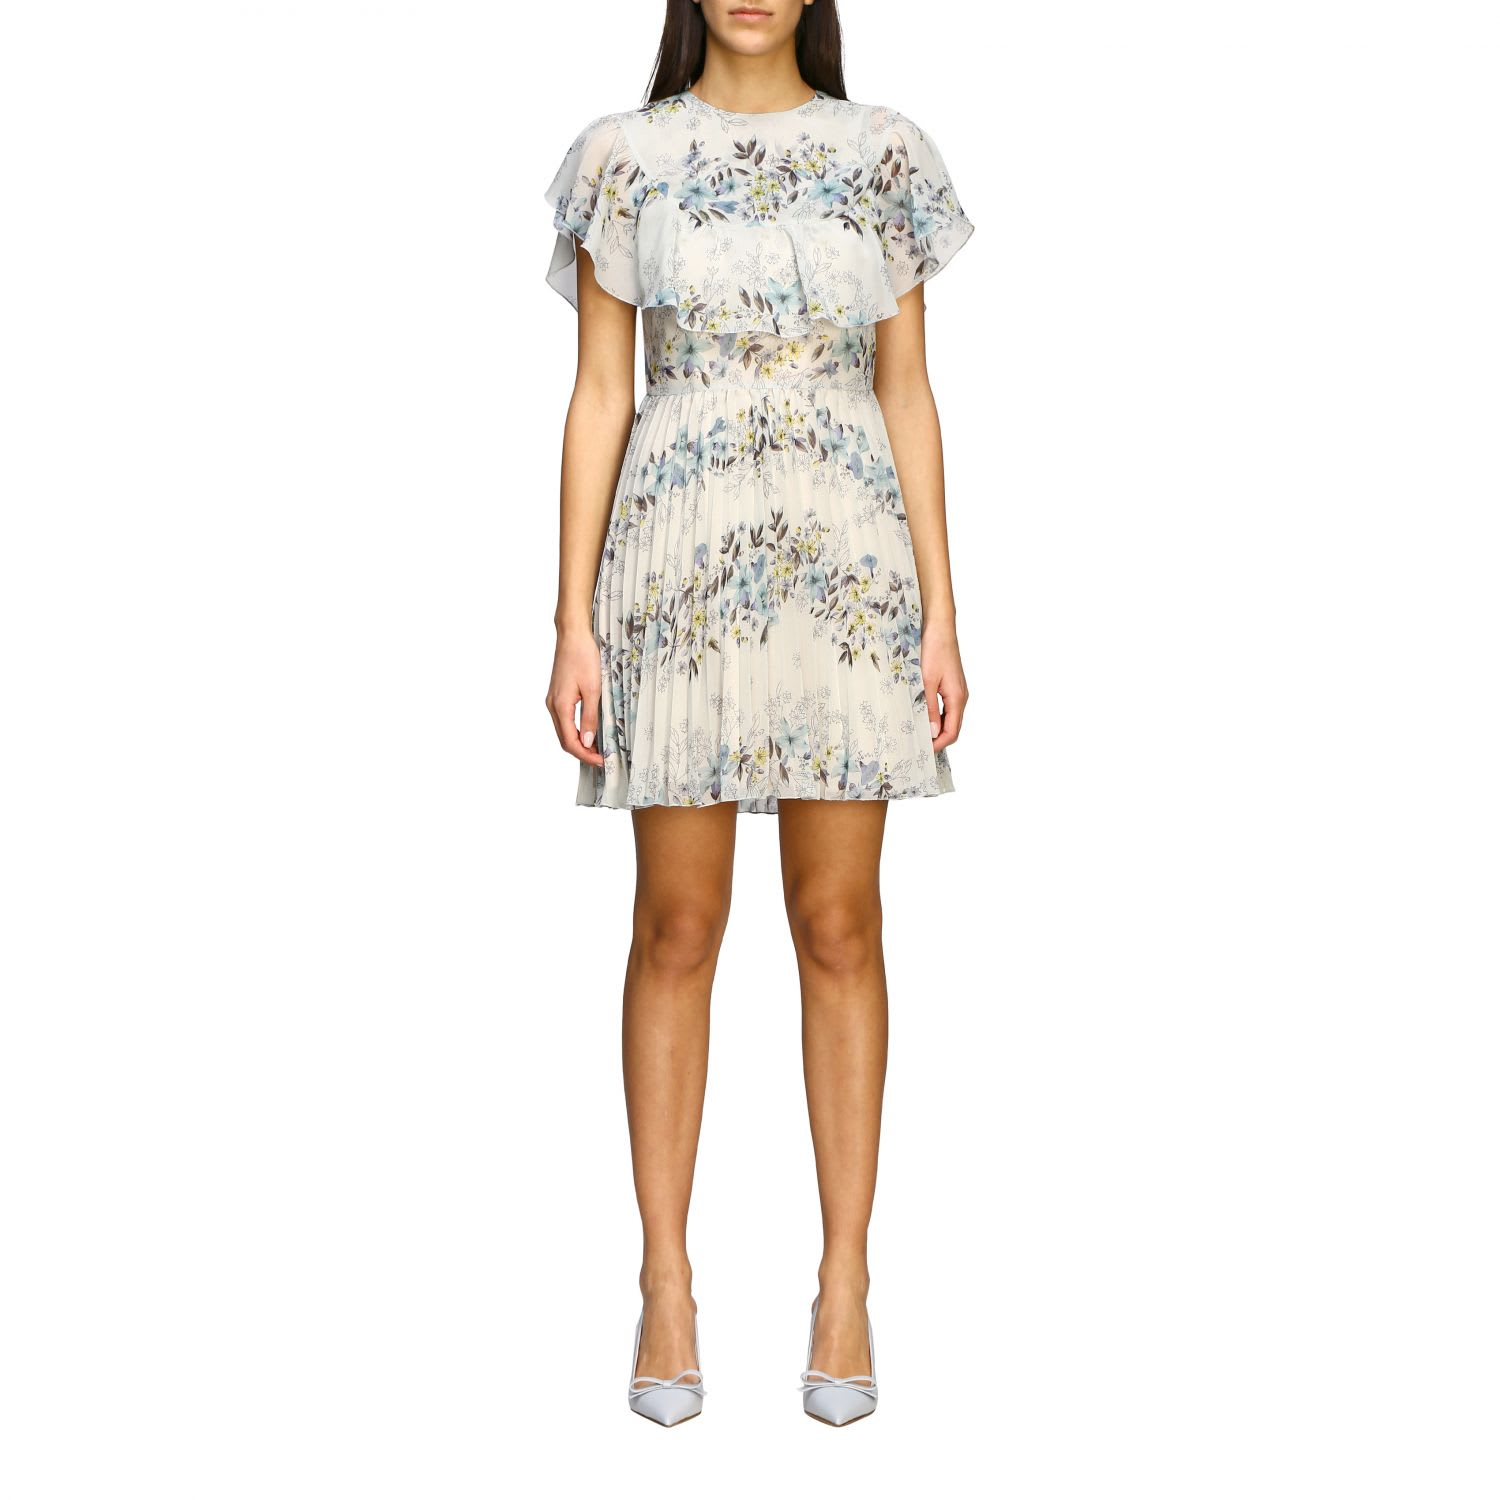 Buy Red Valentino Dress Red Valentino Pleated Silk Dress With Floral Print online, shop RED Valentino with free shipping